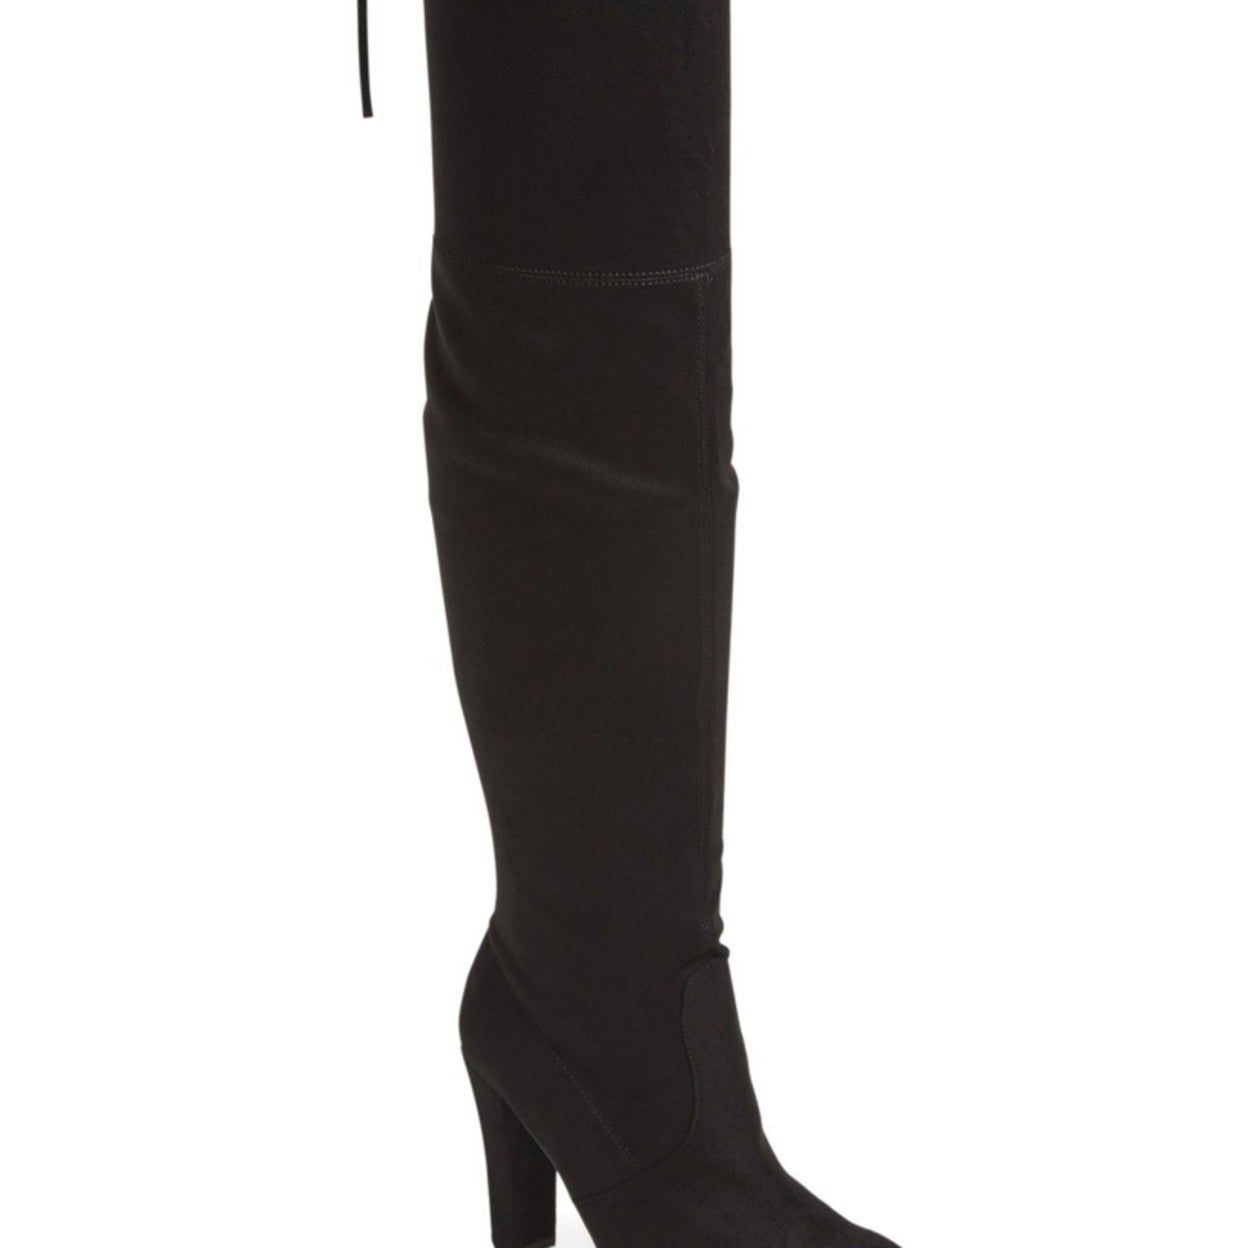 Fanático Travieso pañuelo de papel  Shop Steve Madden Gorgeous Over The Knee High Boots Black - Overstock -  31700638